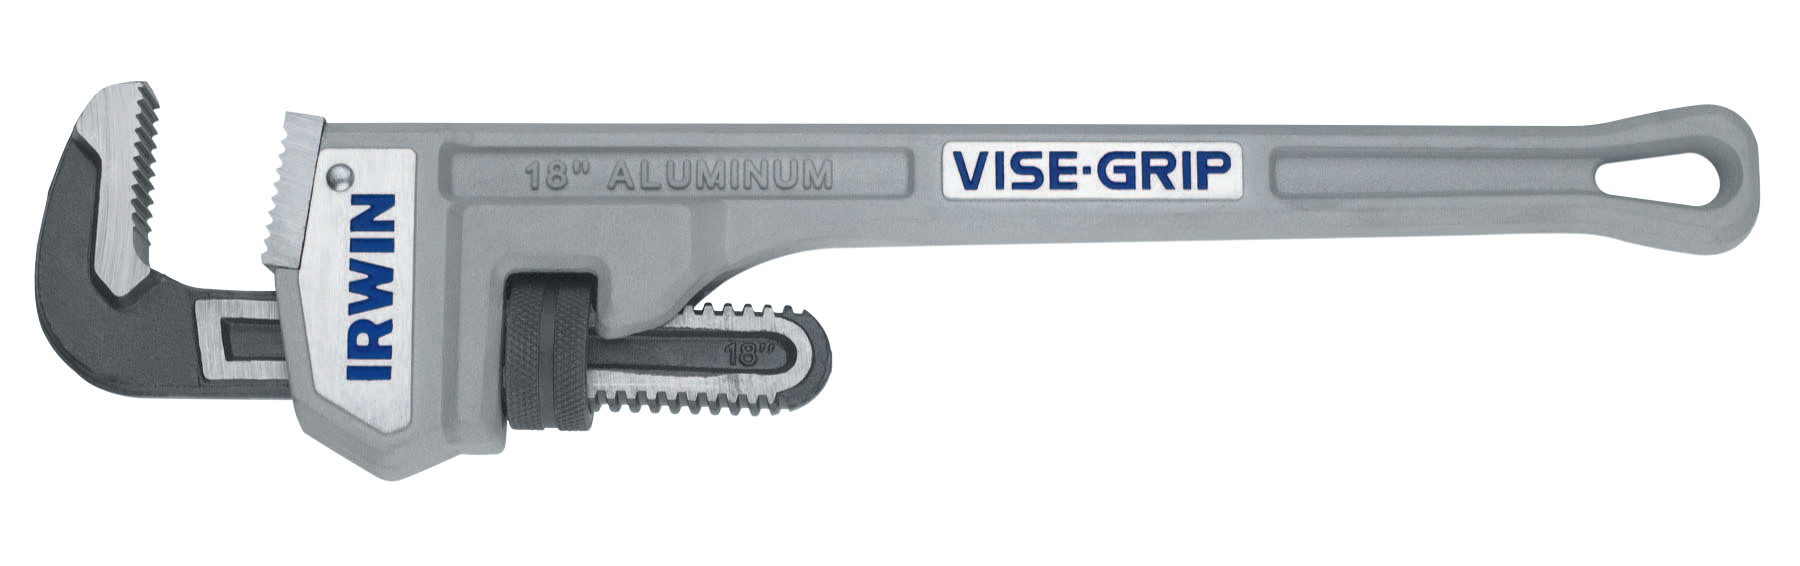 Irwin Vise-Grip Aluminum Pipe Wrenches, Drop Forged Steel Jaw, 18 in by Newell Rubbermaid™